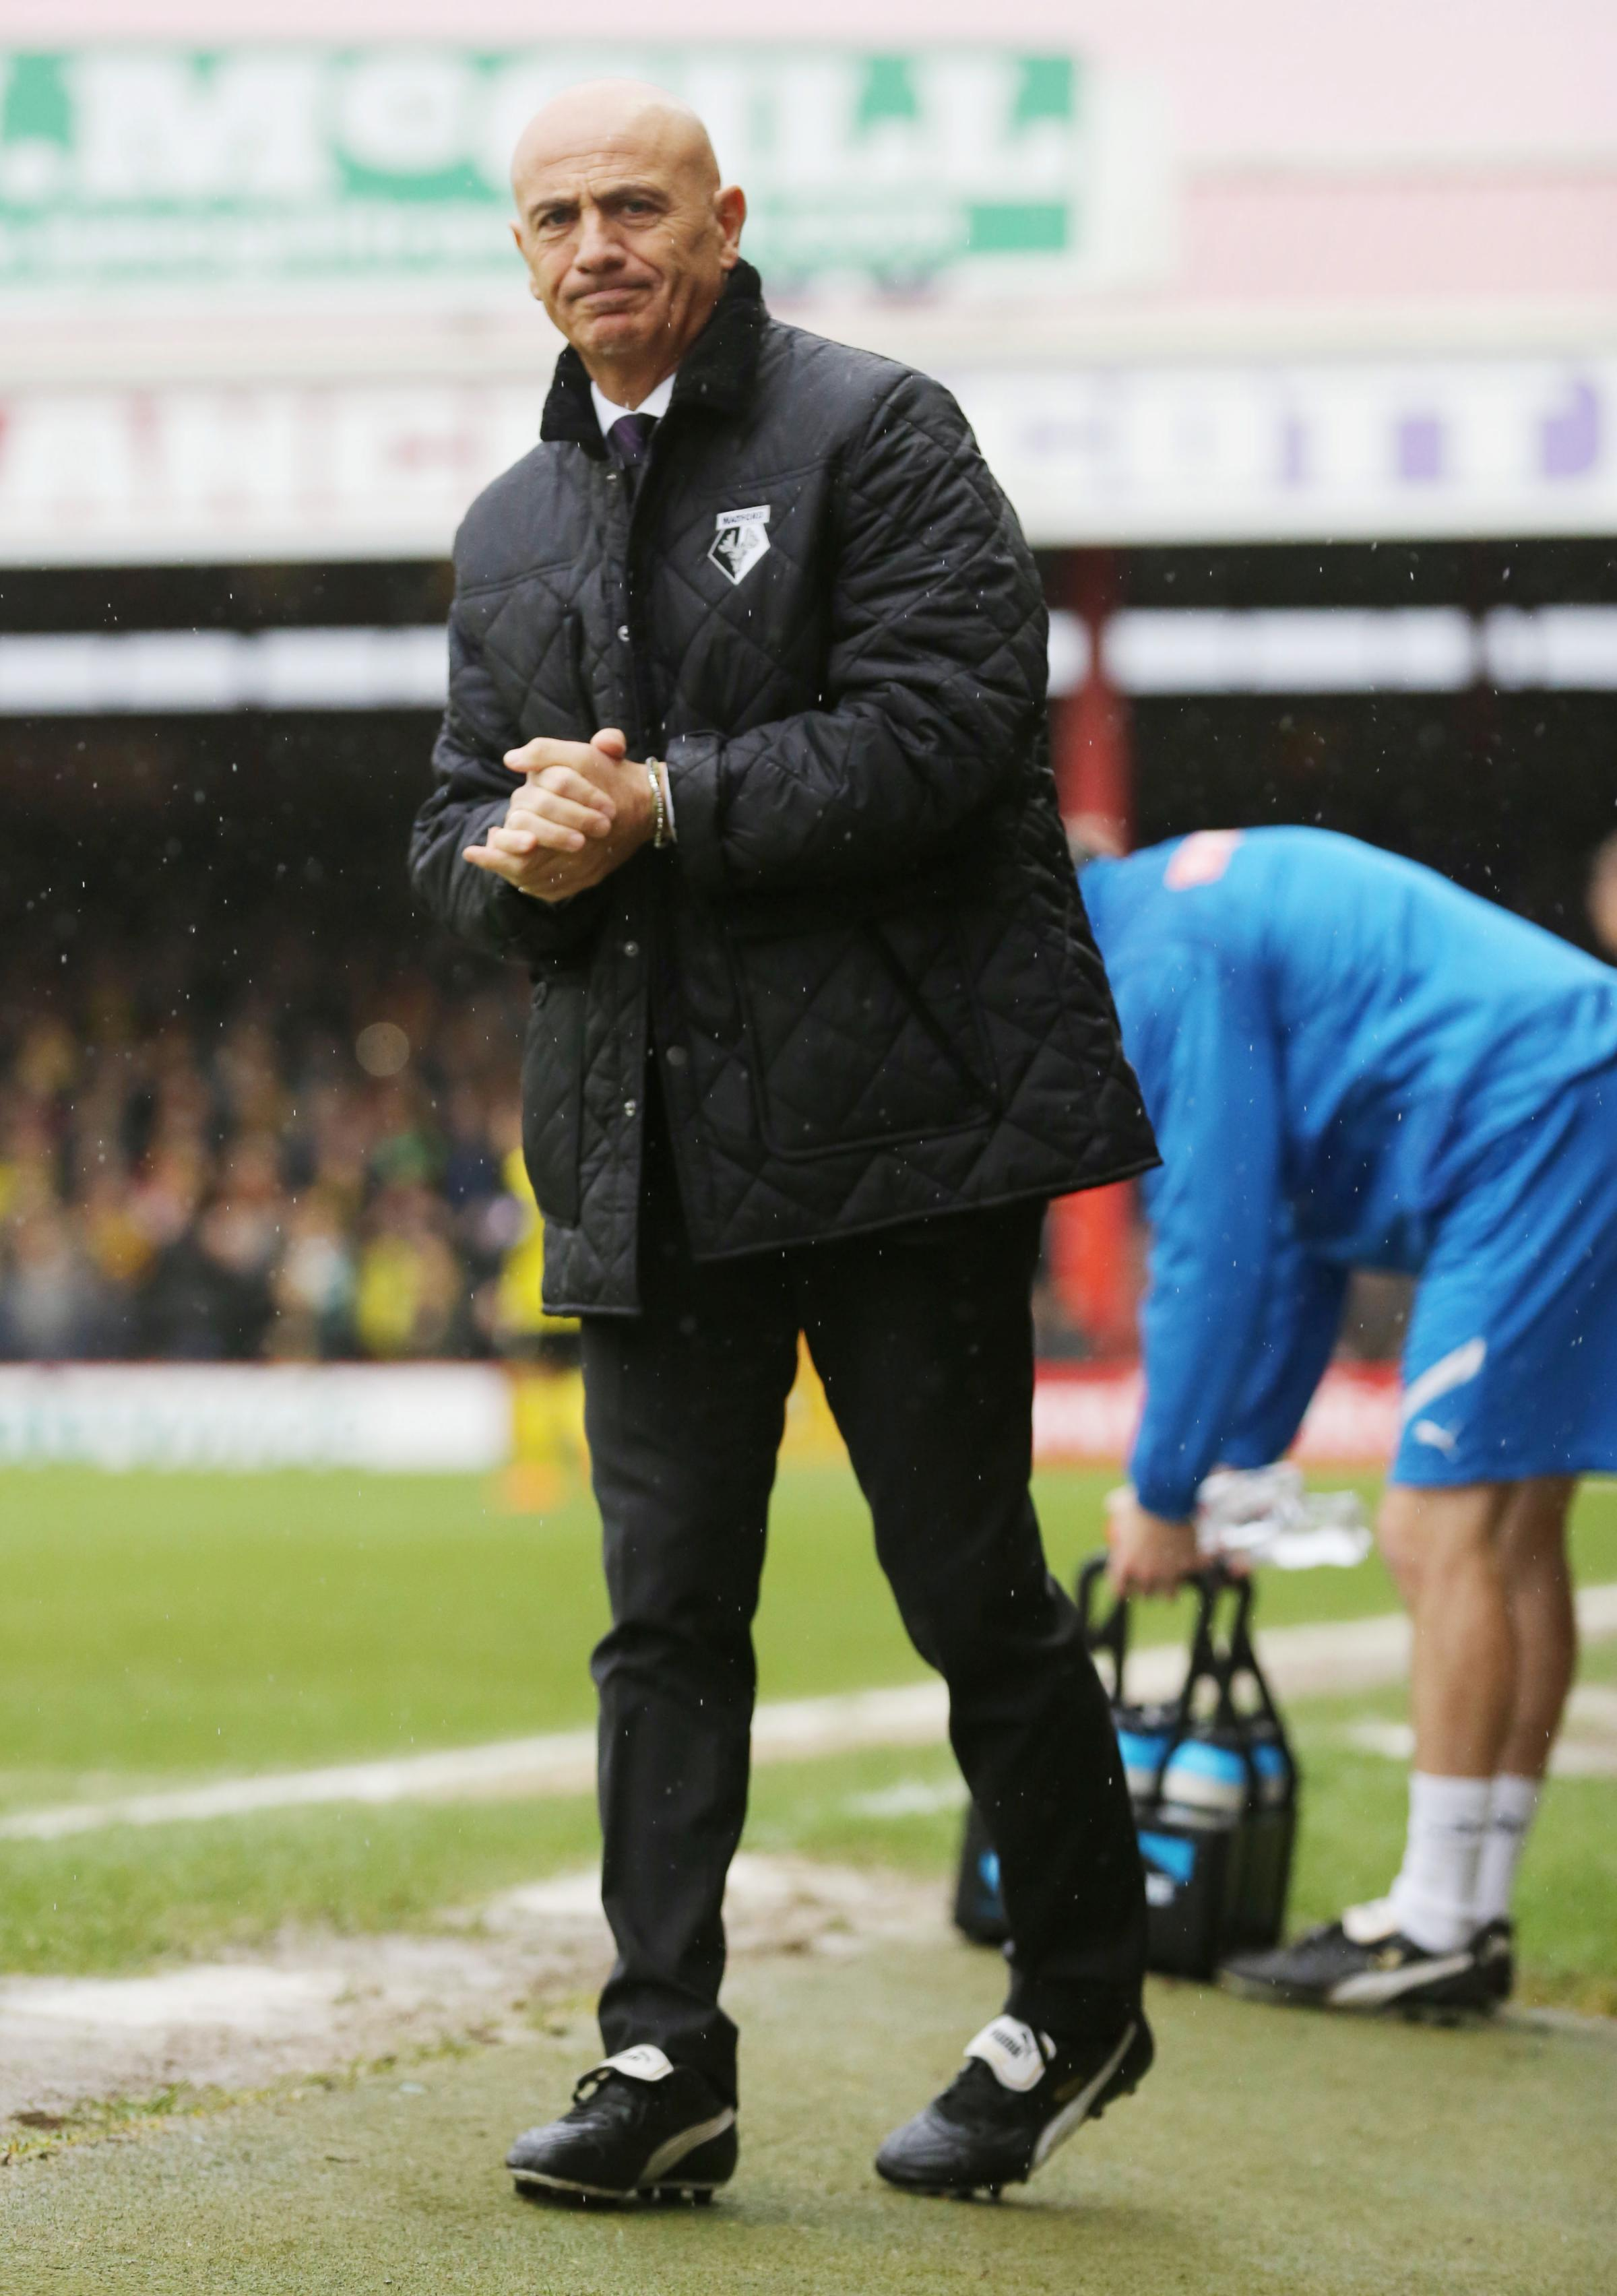 Suited and booted: Beppe Sannino during Watford's 1-1 draw with Bristol City. Picture: Action Images